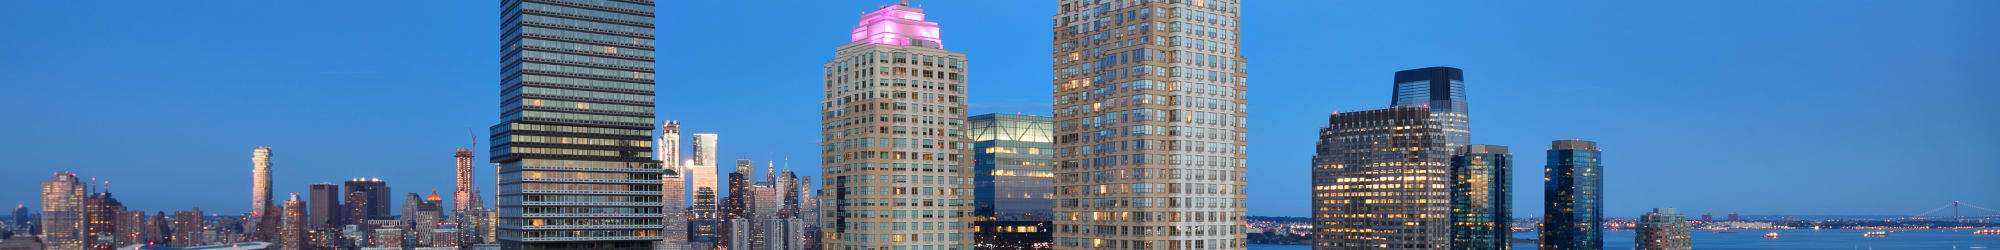 Pet friendly apartments at Trump Bay Street in Jersey City, New Jersey